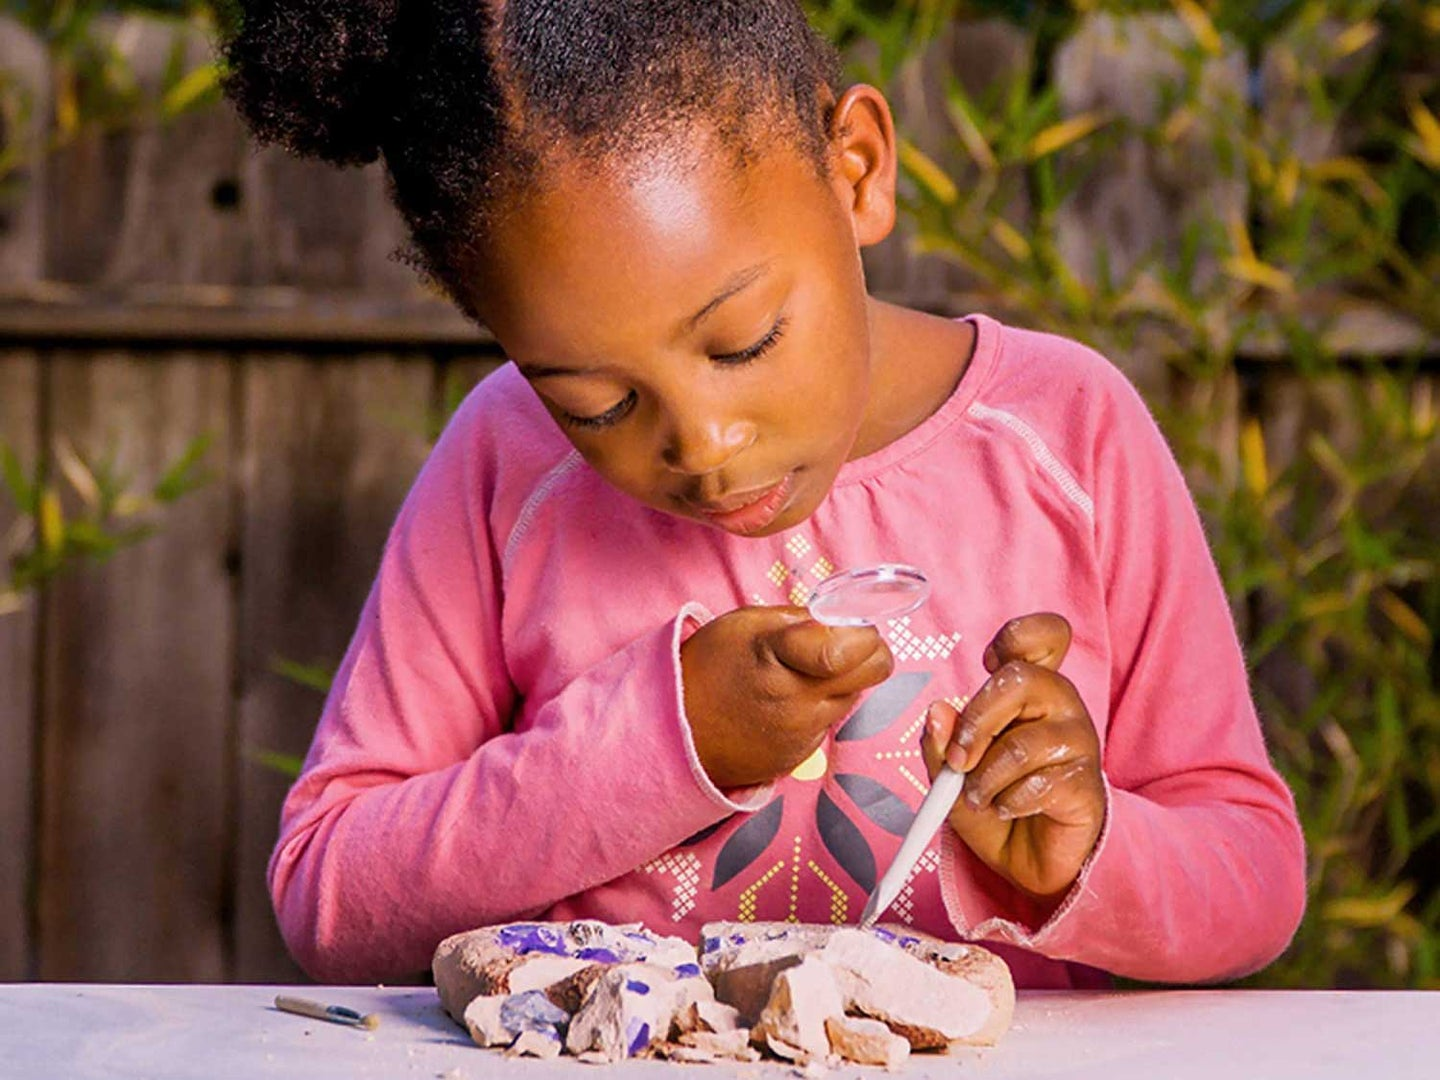 Girl digging in National Geographic dig kit.